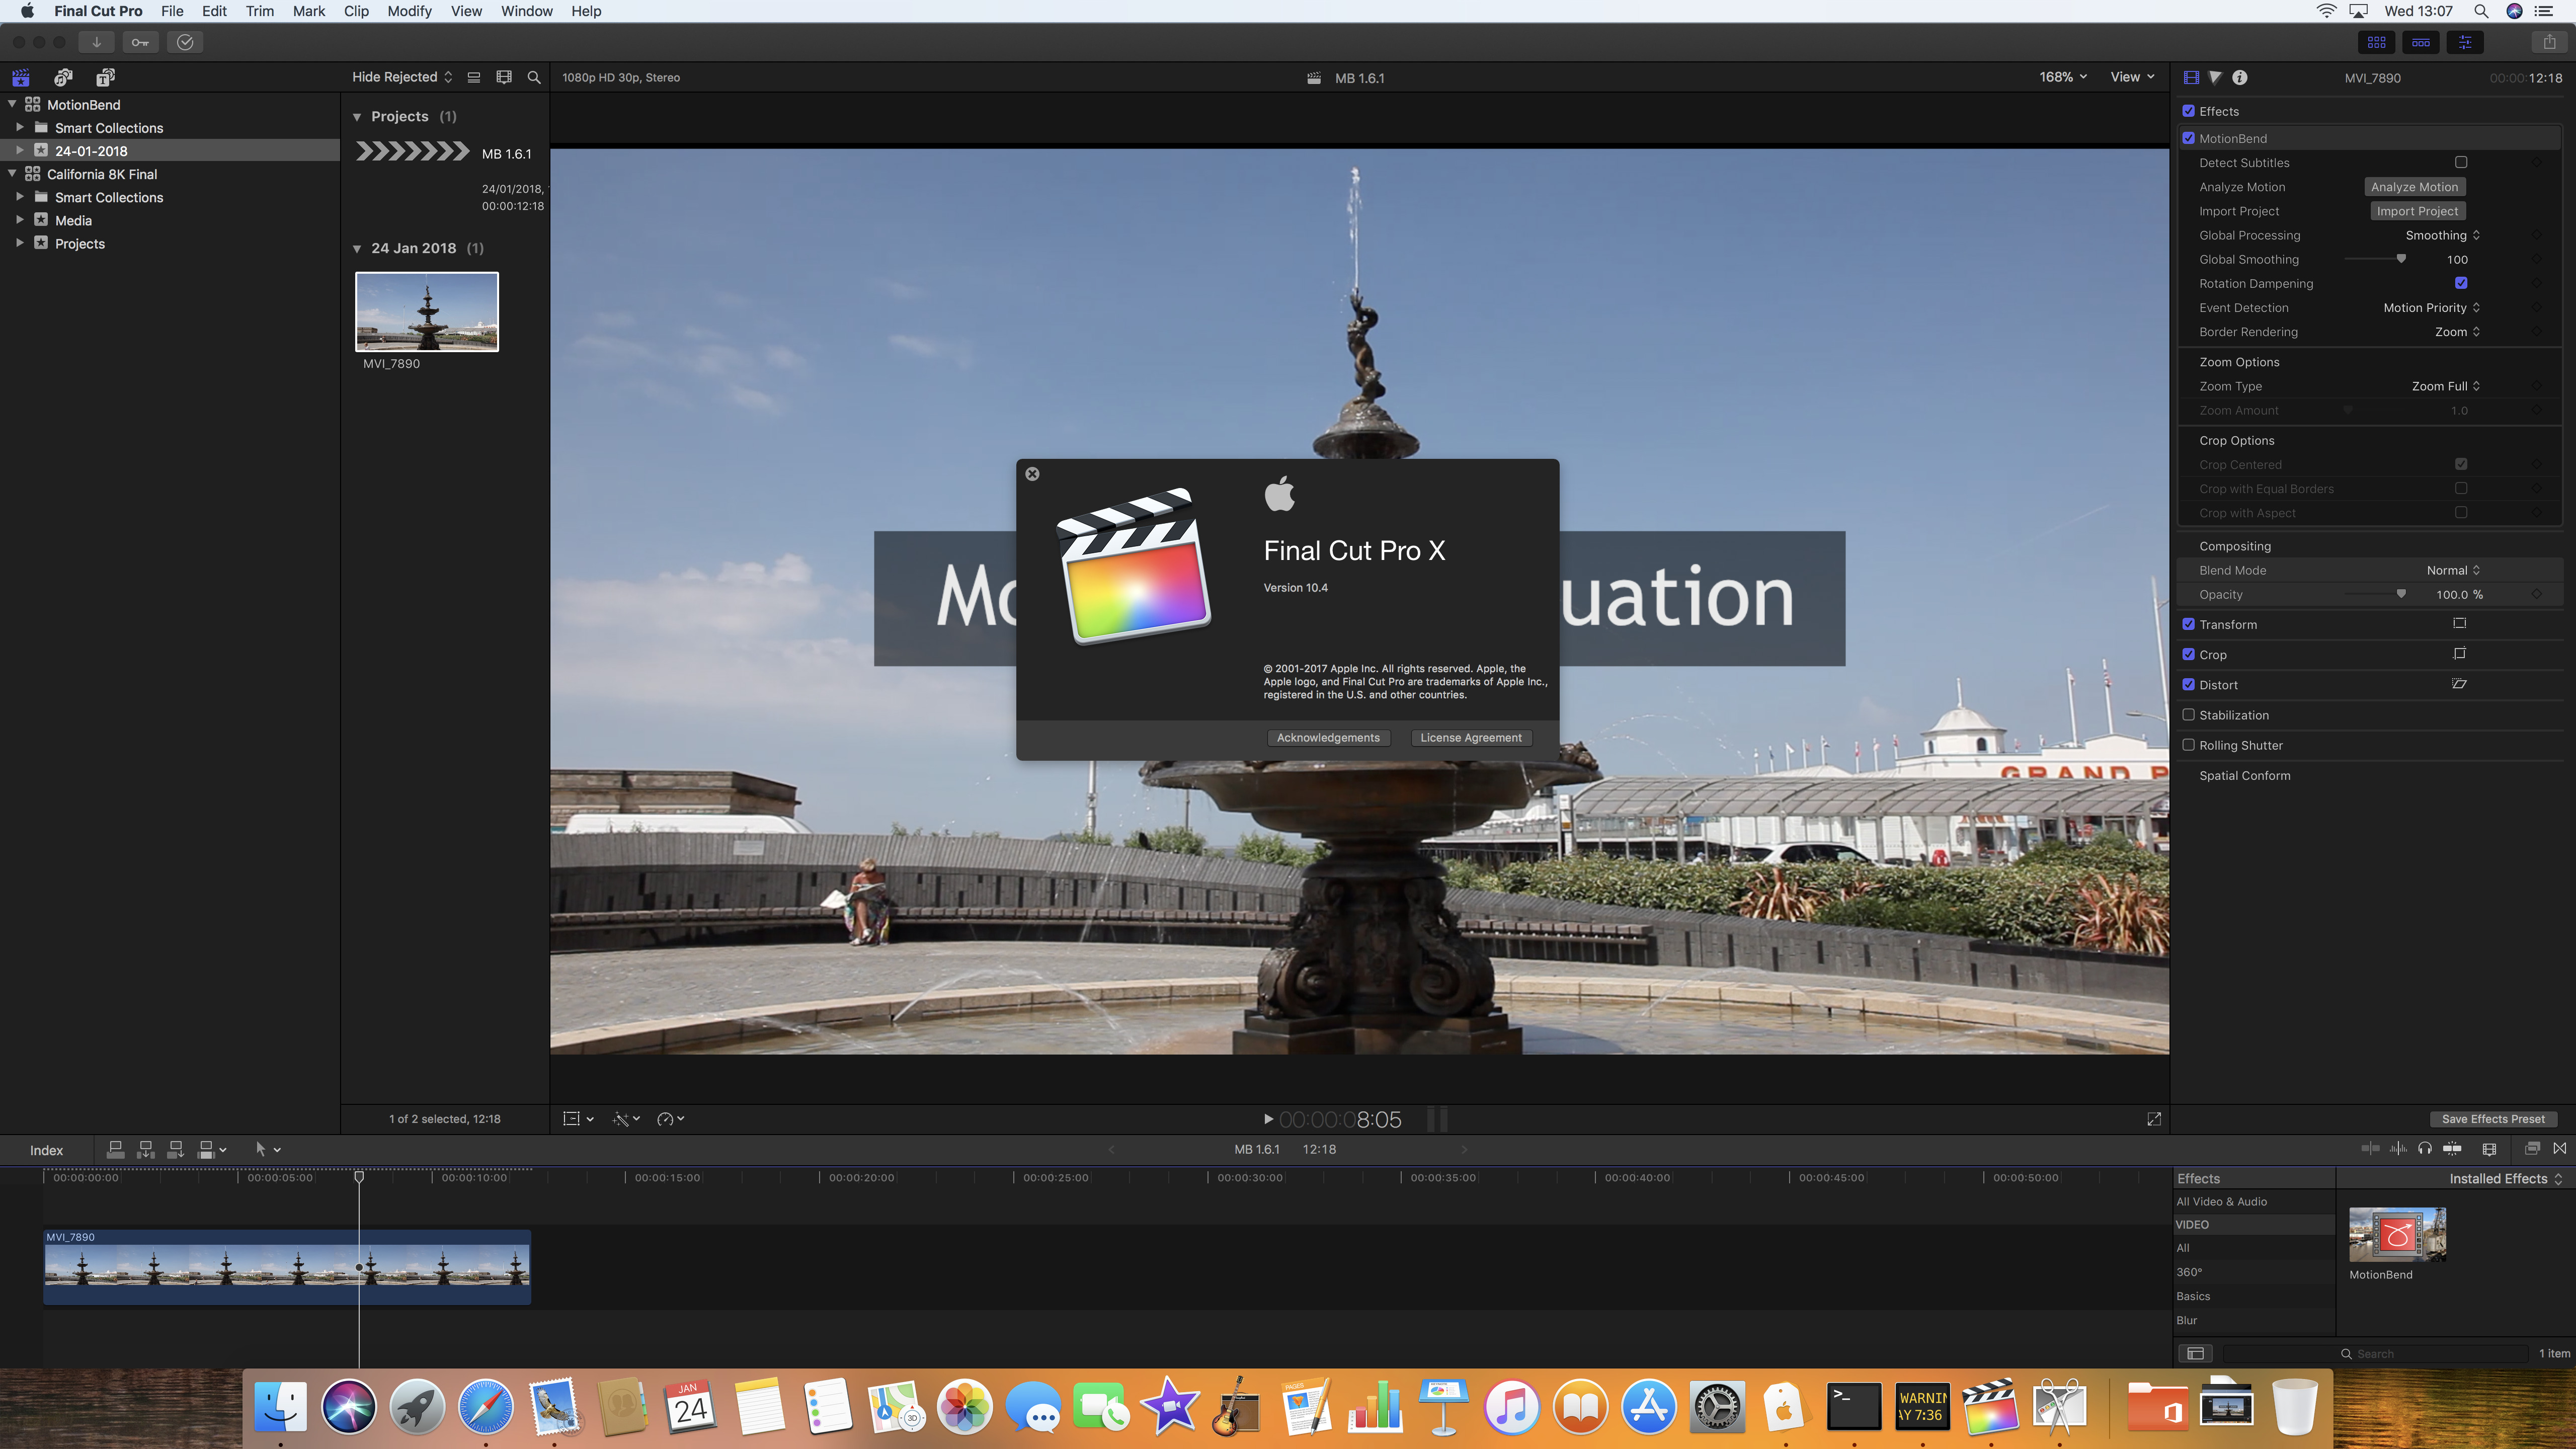 MotionBend Plugin running in FCPX 10.4